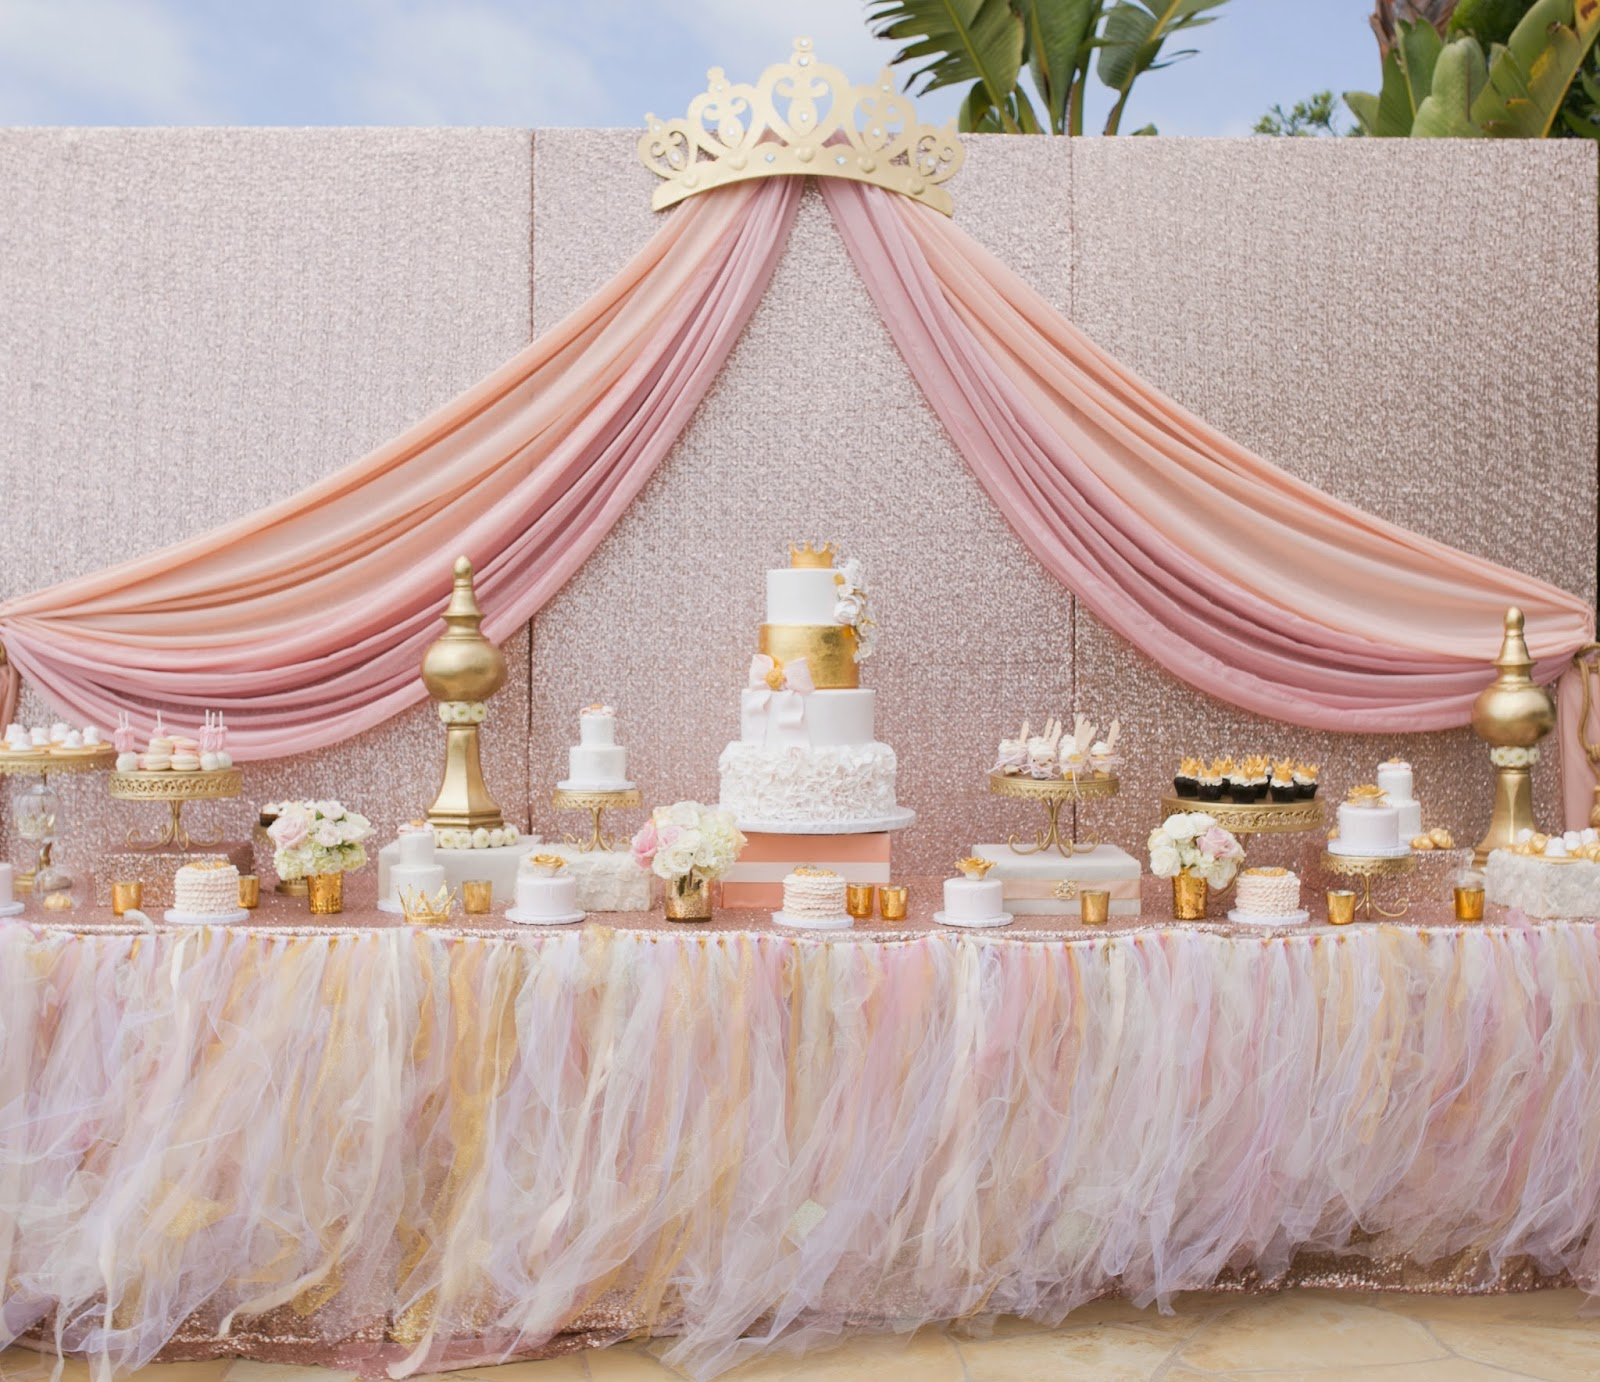 alfa img showing princess ballerina theme baby shower